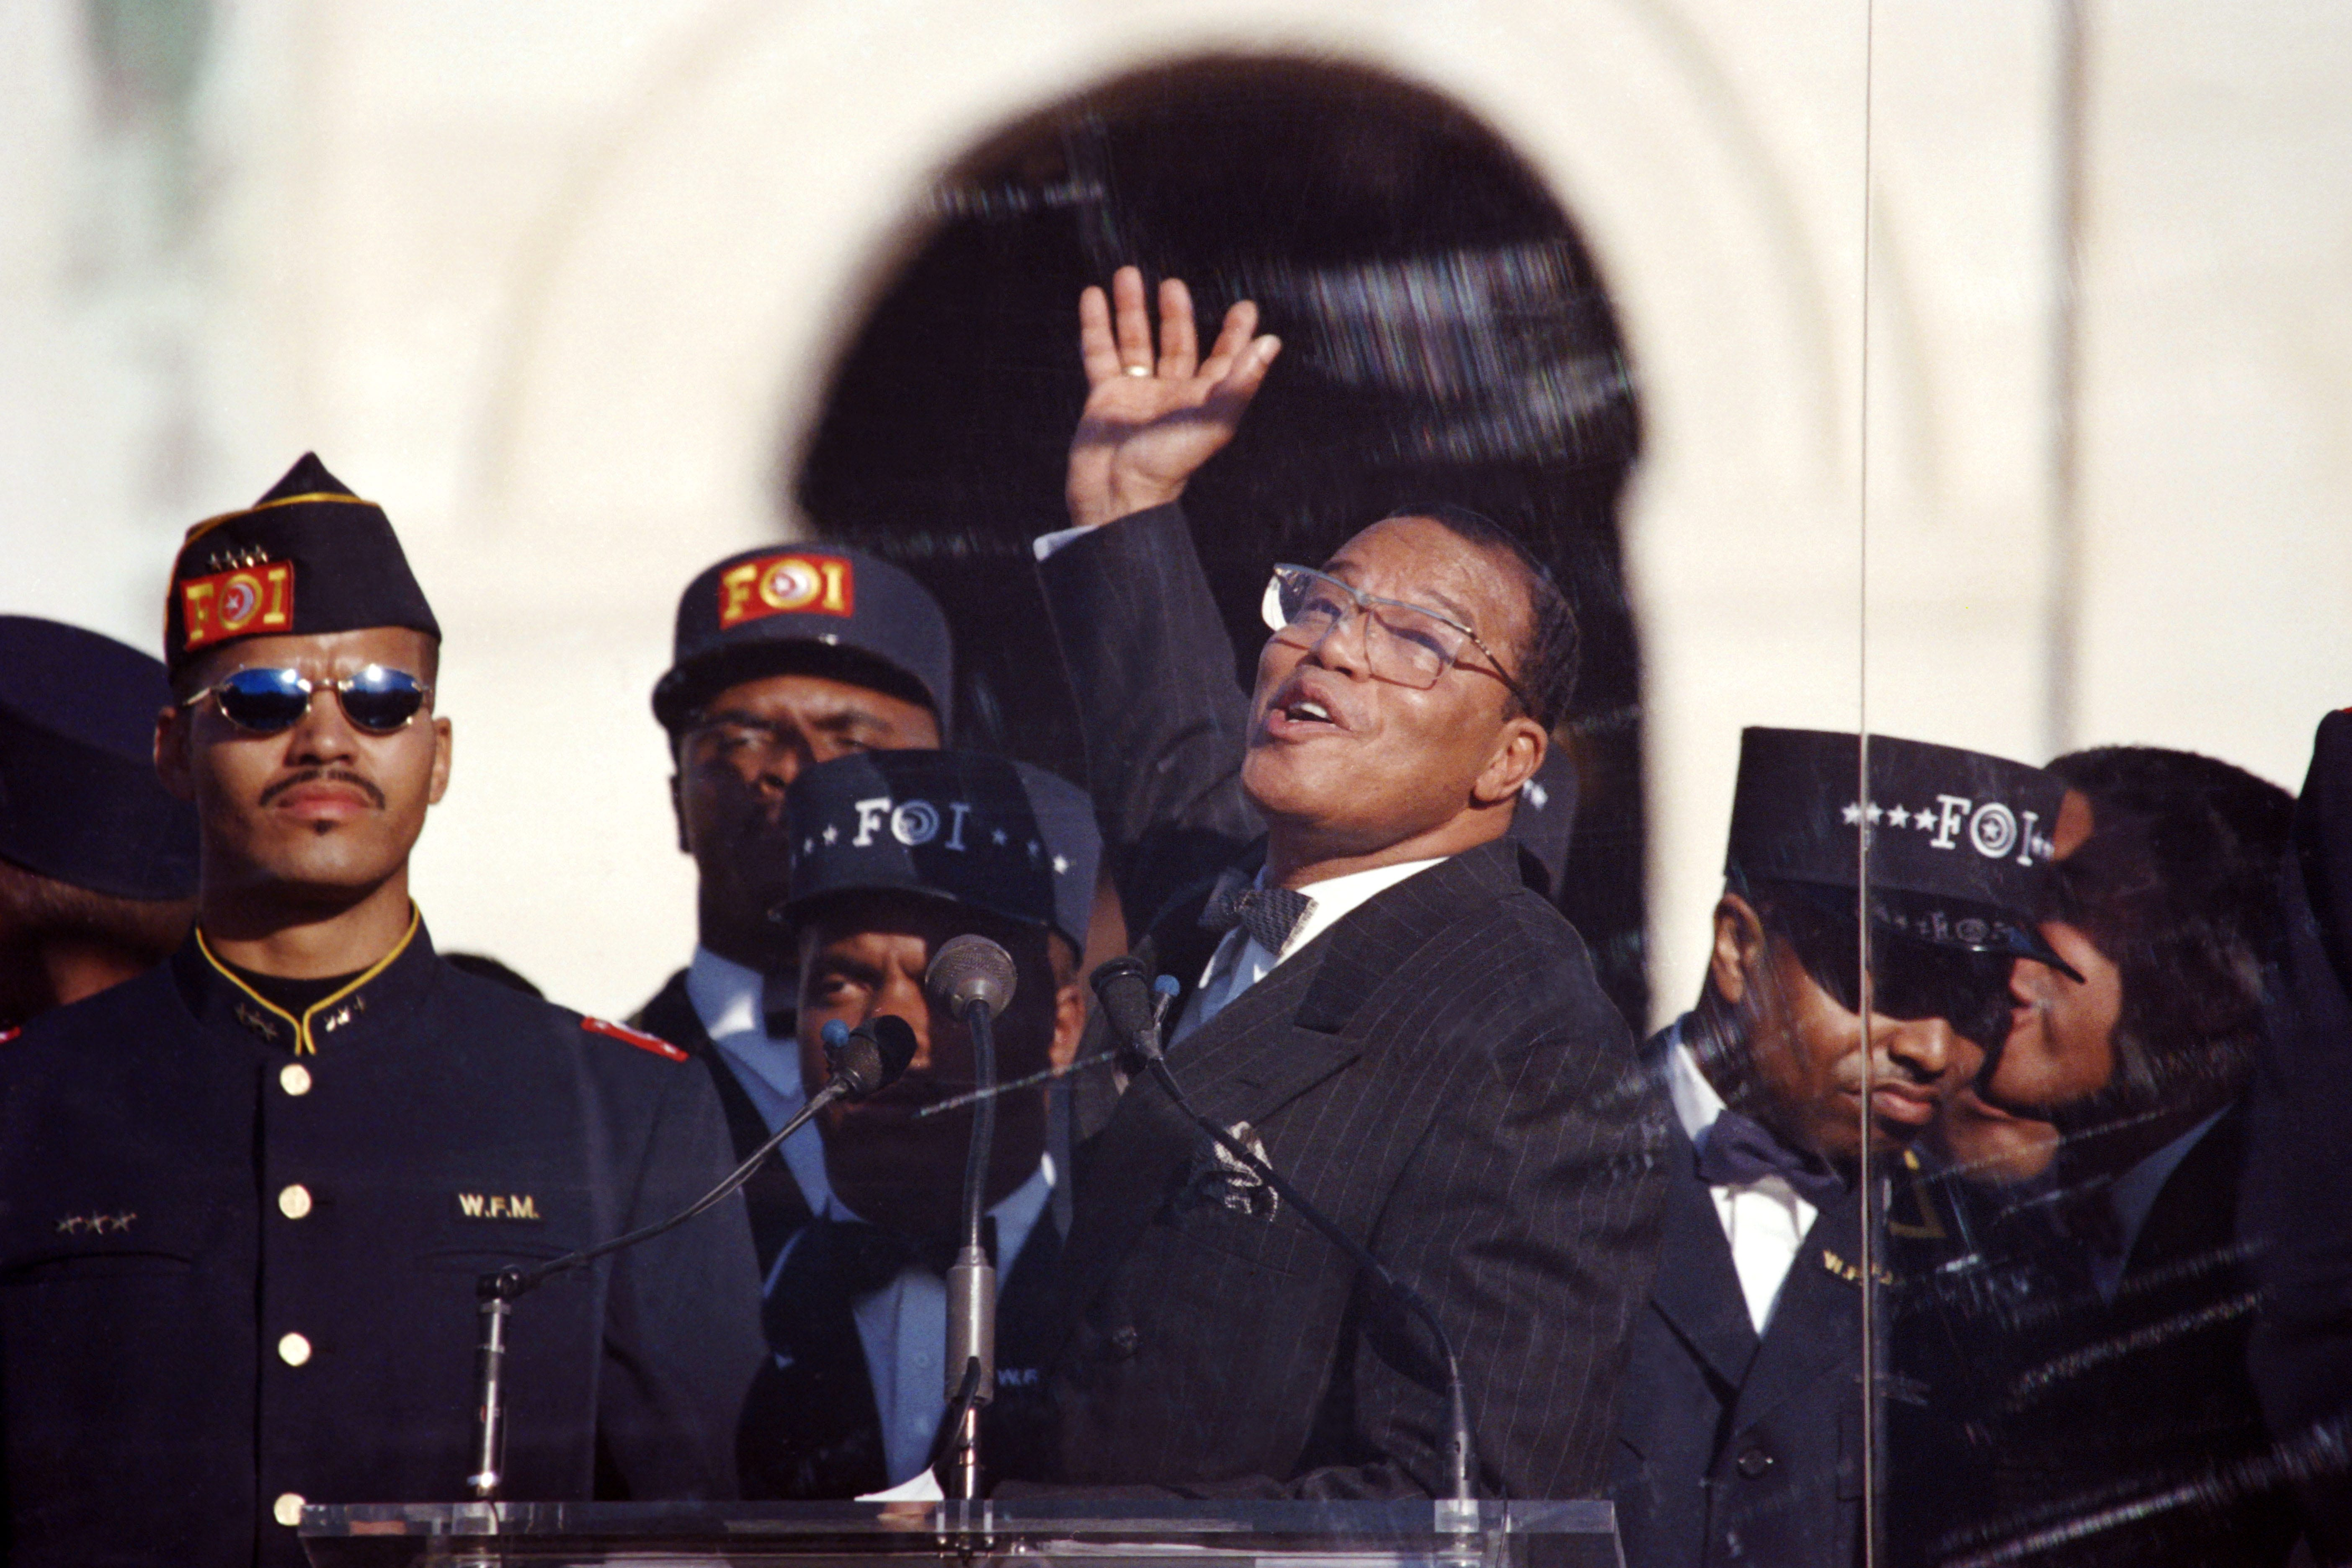 Nation of Islam leader Louis Farrakhan raises his hand behind bulletproof glass as he speaks in front of the Capitol Building at the Million Man March on Oct. 16, 1995.